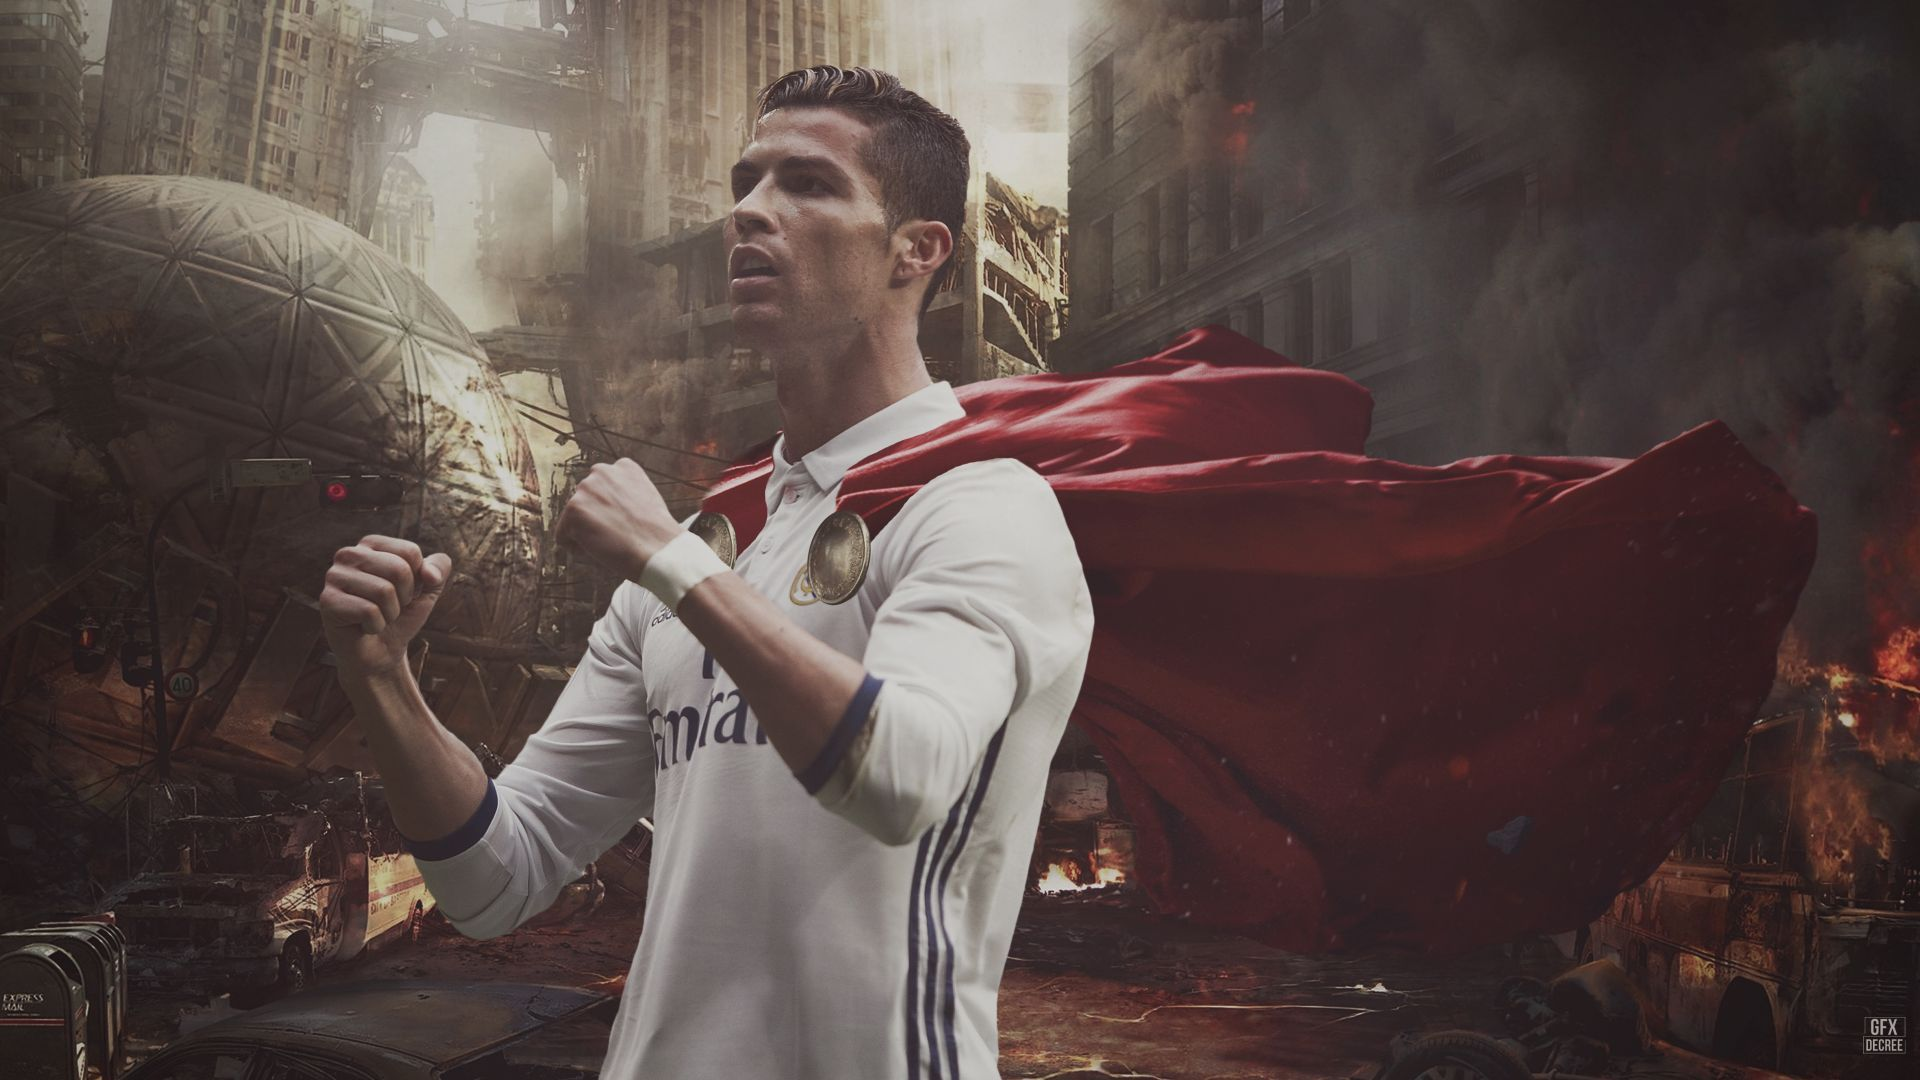 Download wallpapers of Cristiano Ronaldo Portugal Real Madrid 1920x1080